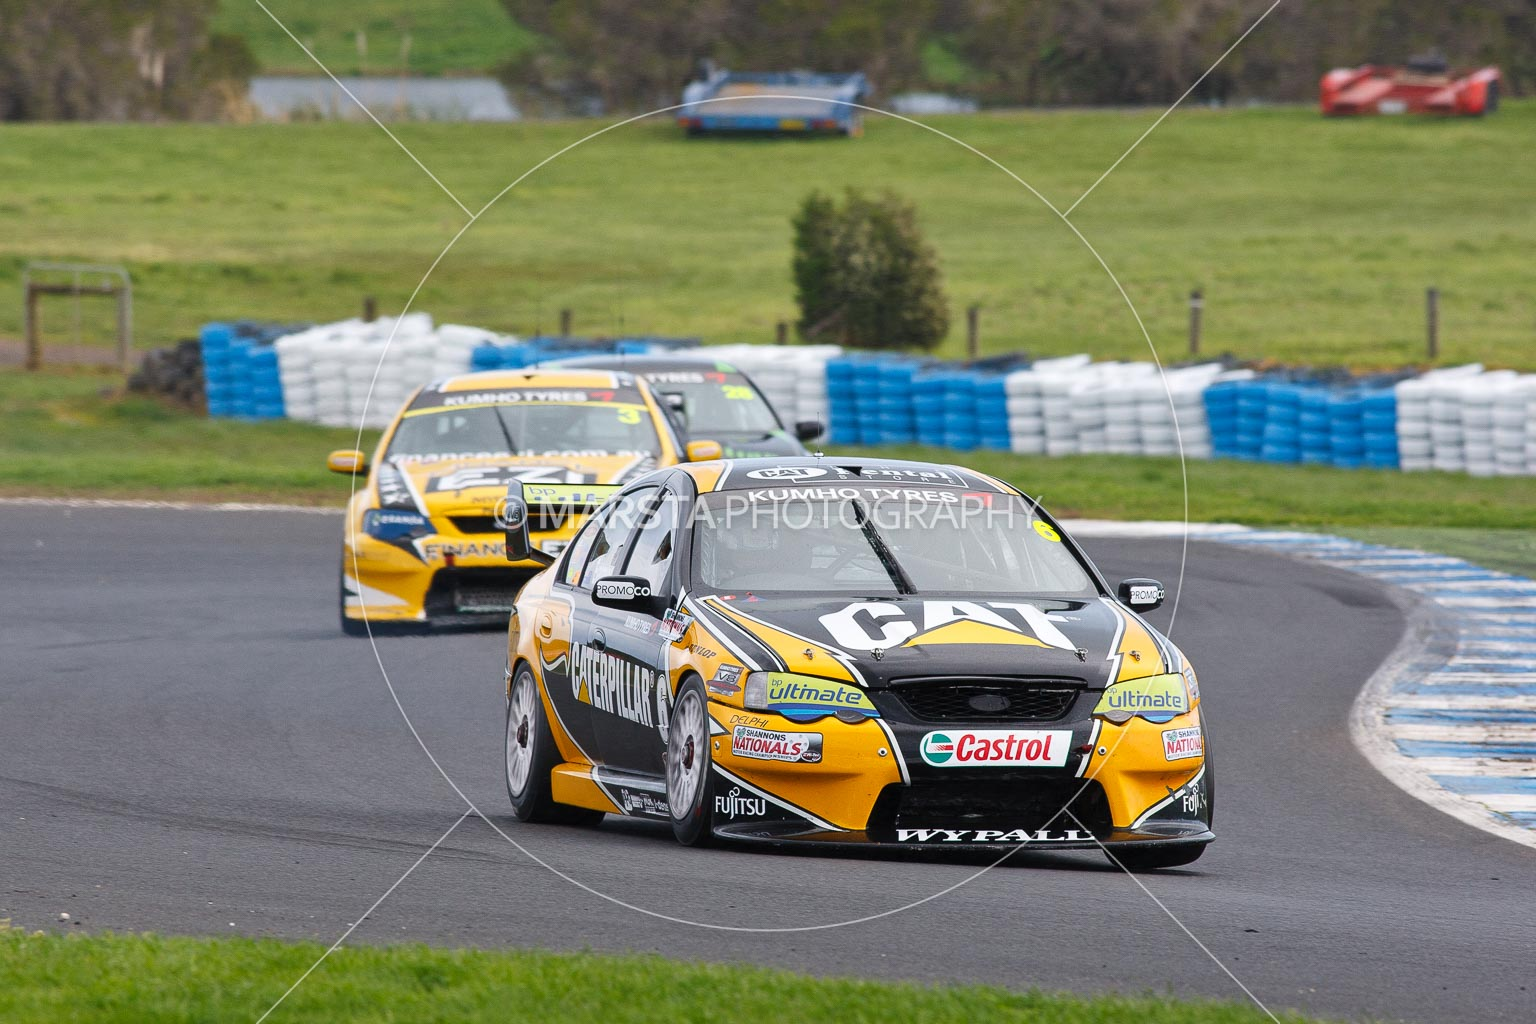 (6);23 September 2012;6;Australia;Ford Falcon BA;Phillip Island;Shannons Nationals;Tony Evangelou;V8 Touring Cars;VIC;Victoria;auto;motorsport;racing;super telephoto